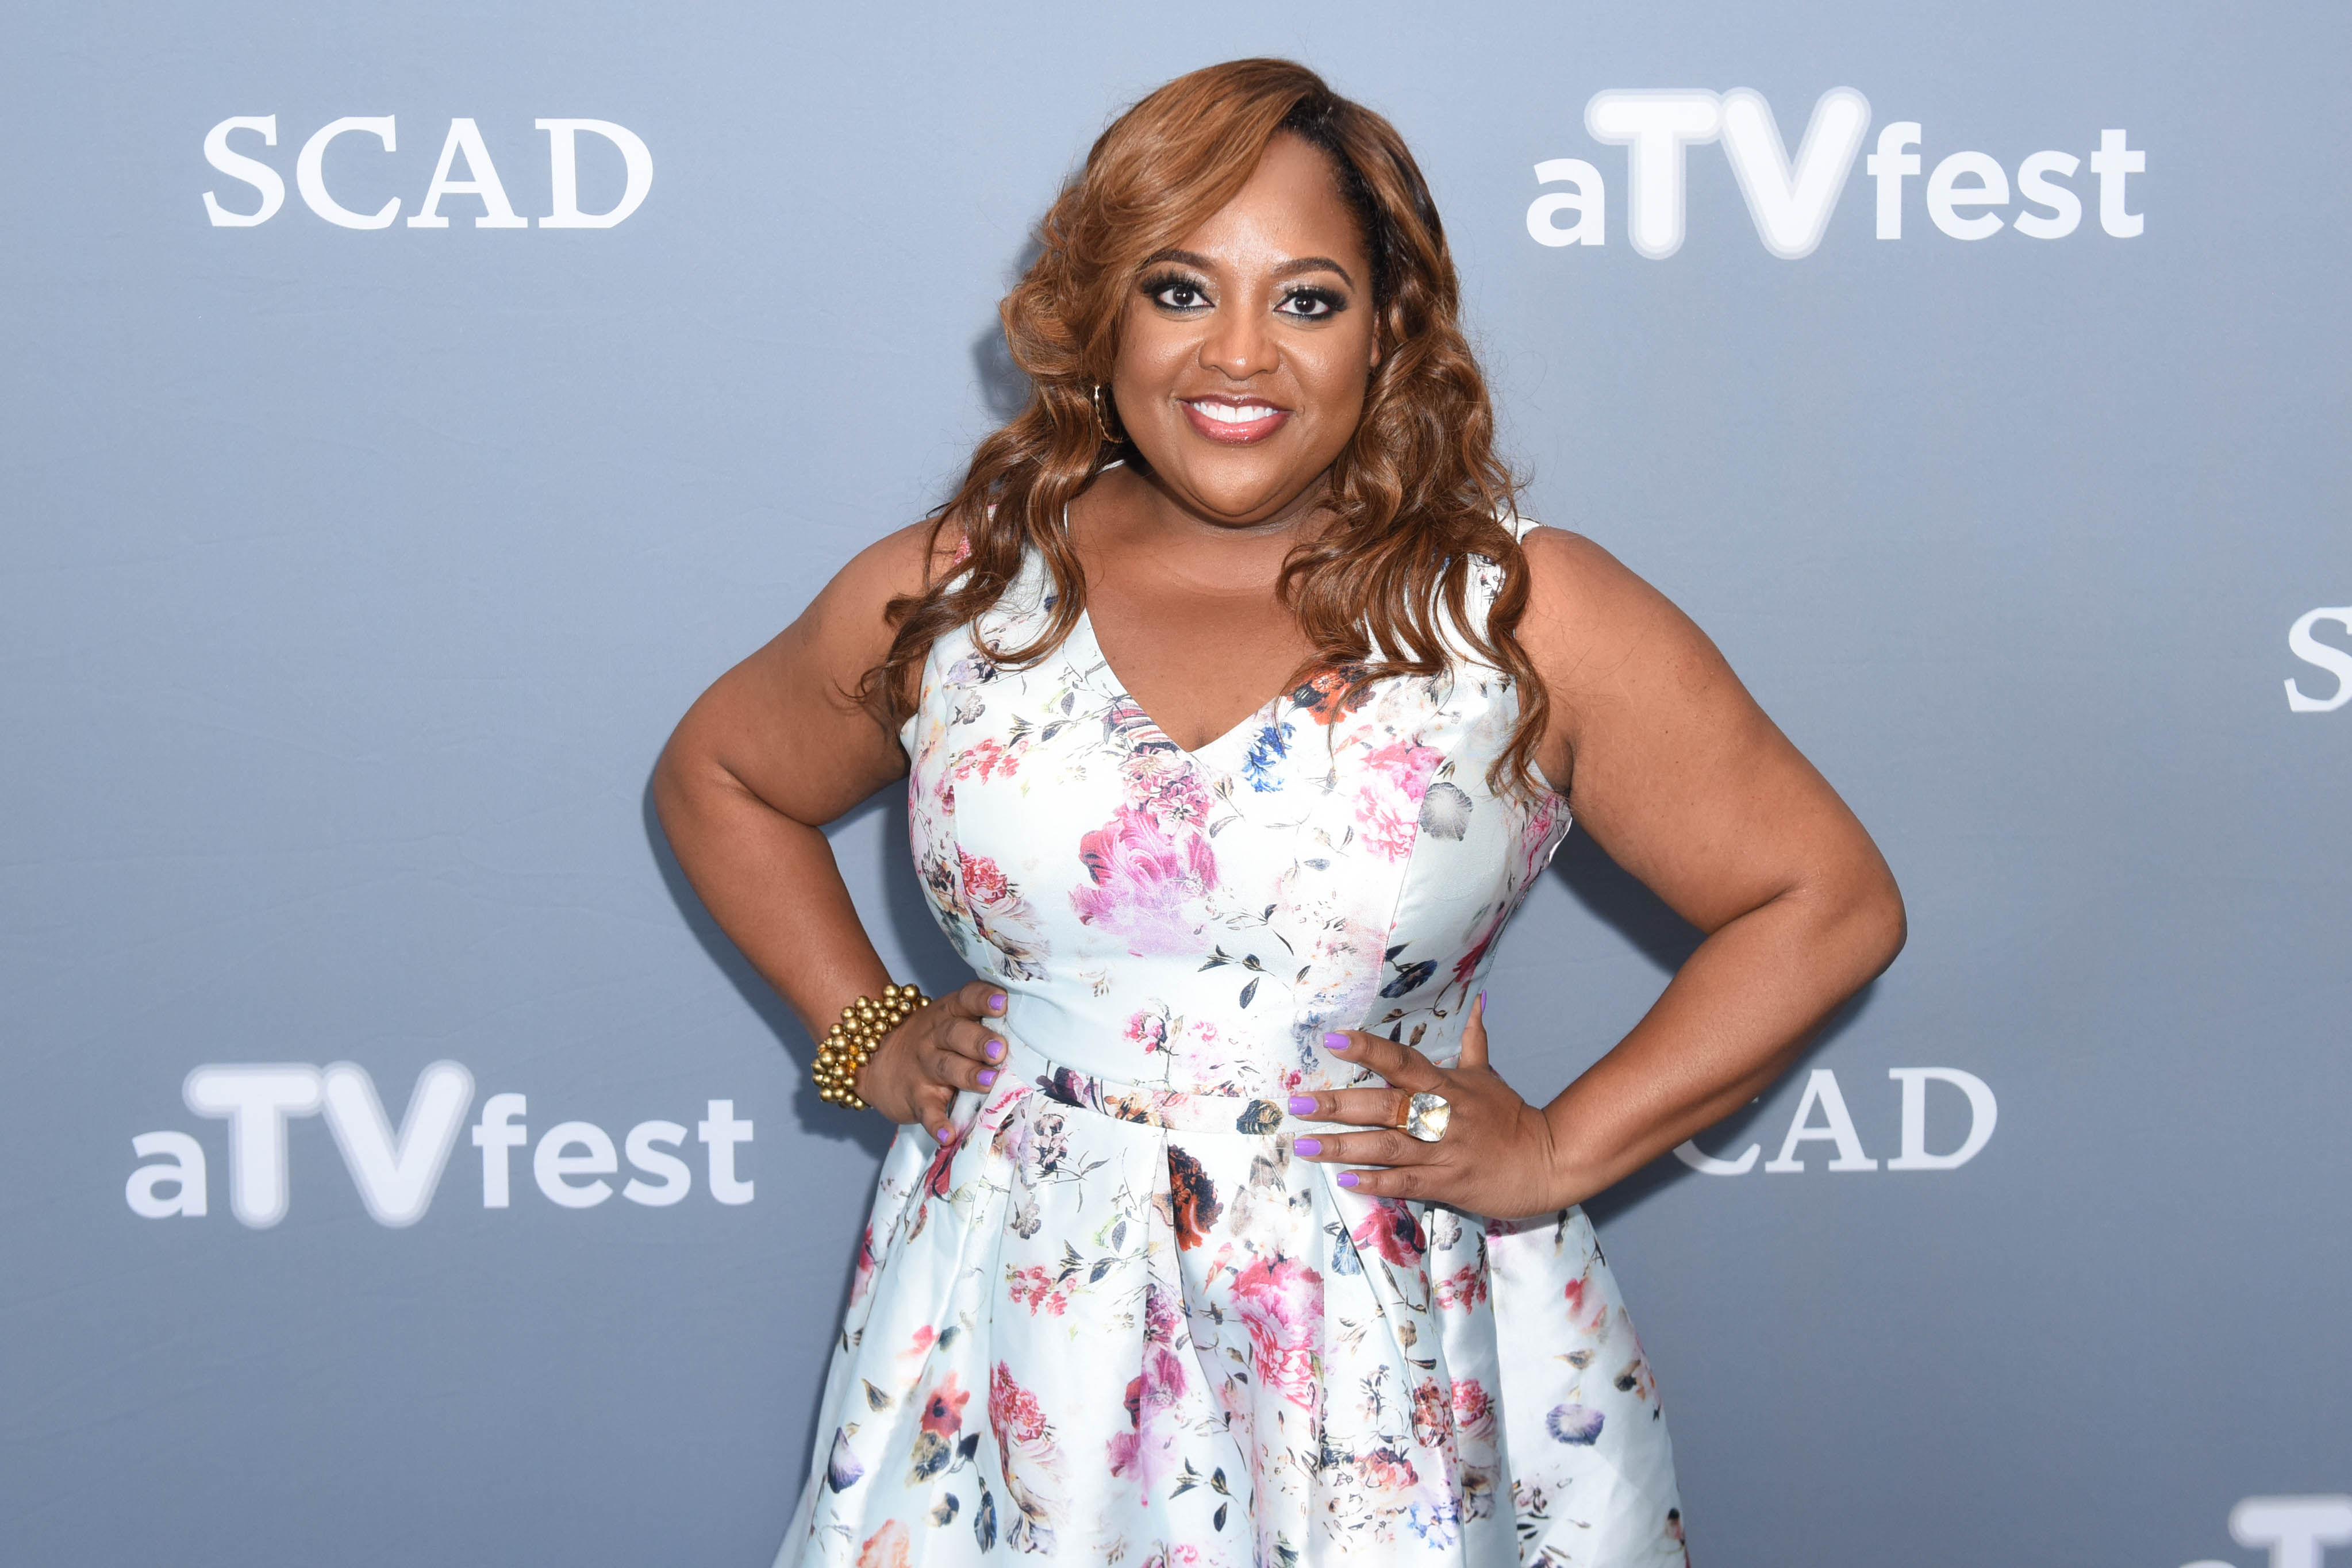 """Sherri Shepherd at a press junket for """"Trial & Error"""" during aTVfest 2017 on February 3, 2017 in Atlanta, Georgia.  Source: Getty Images"""